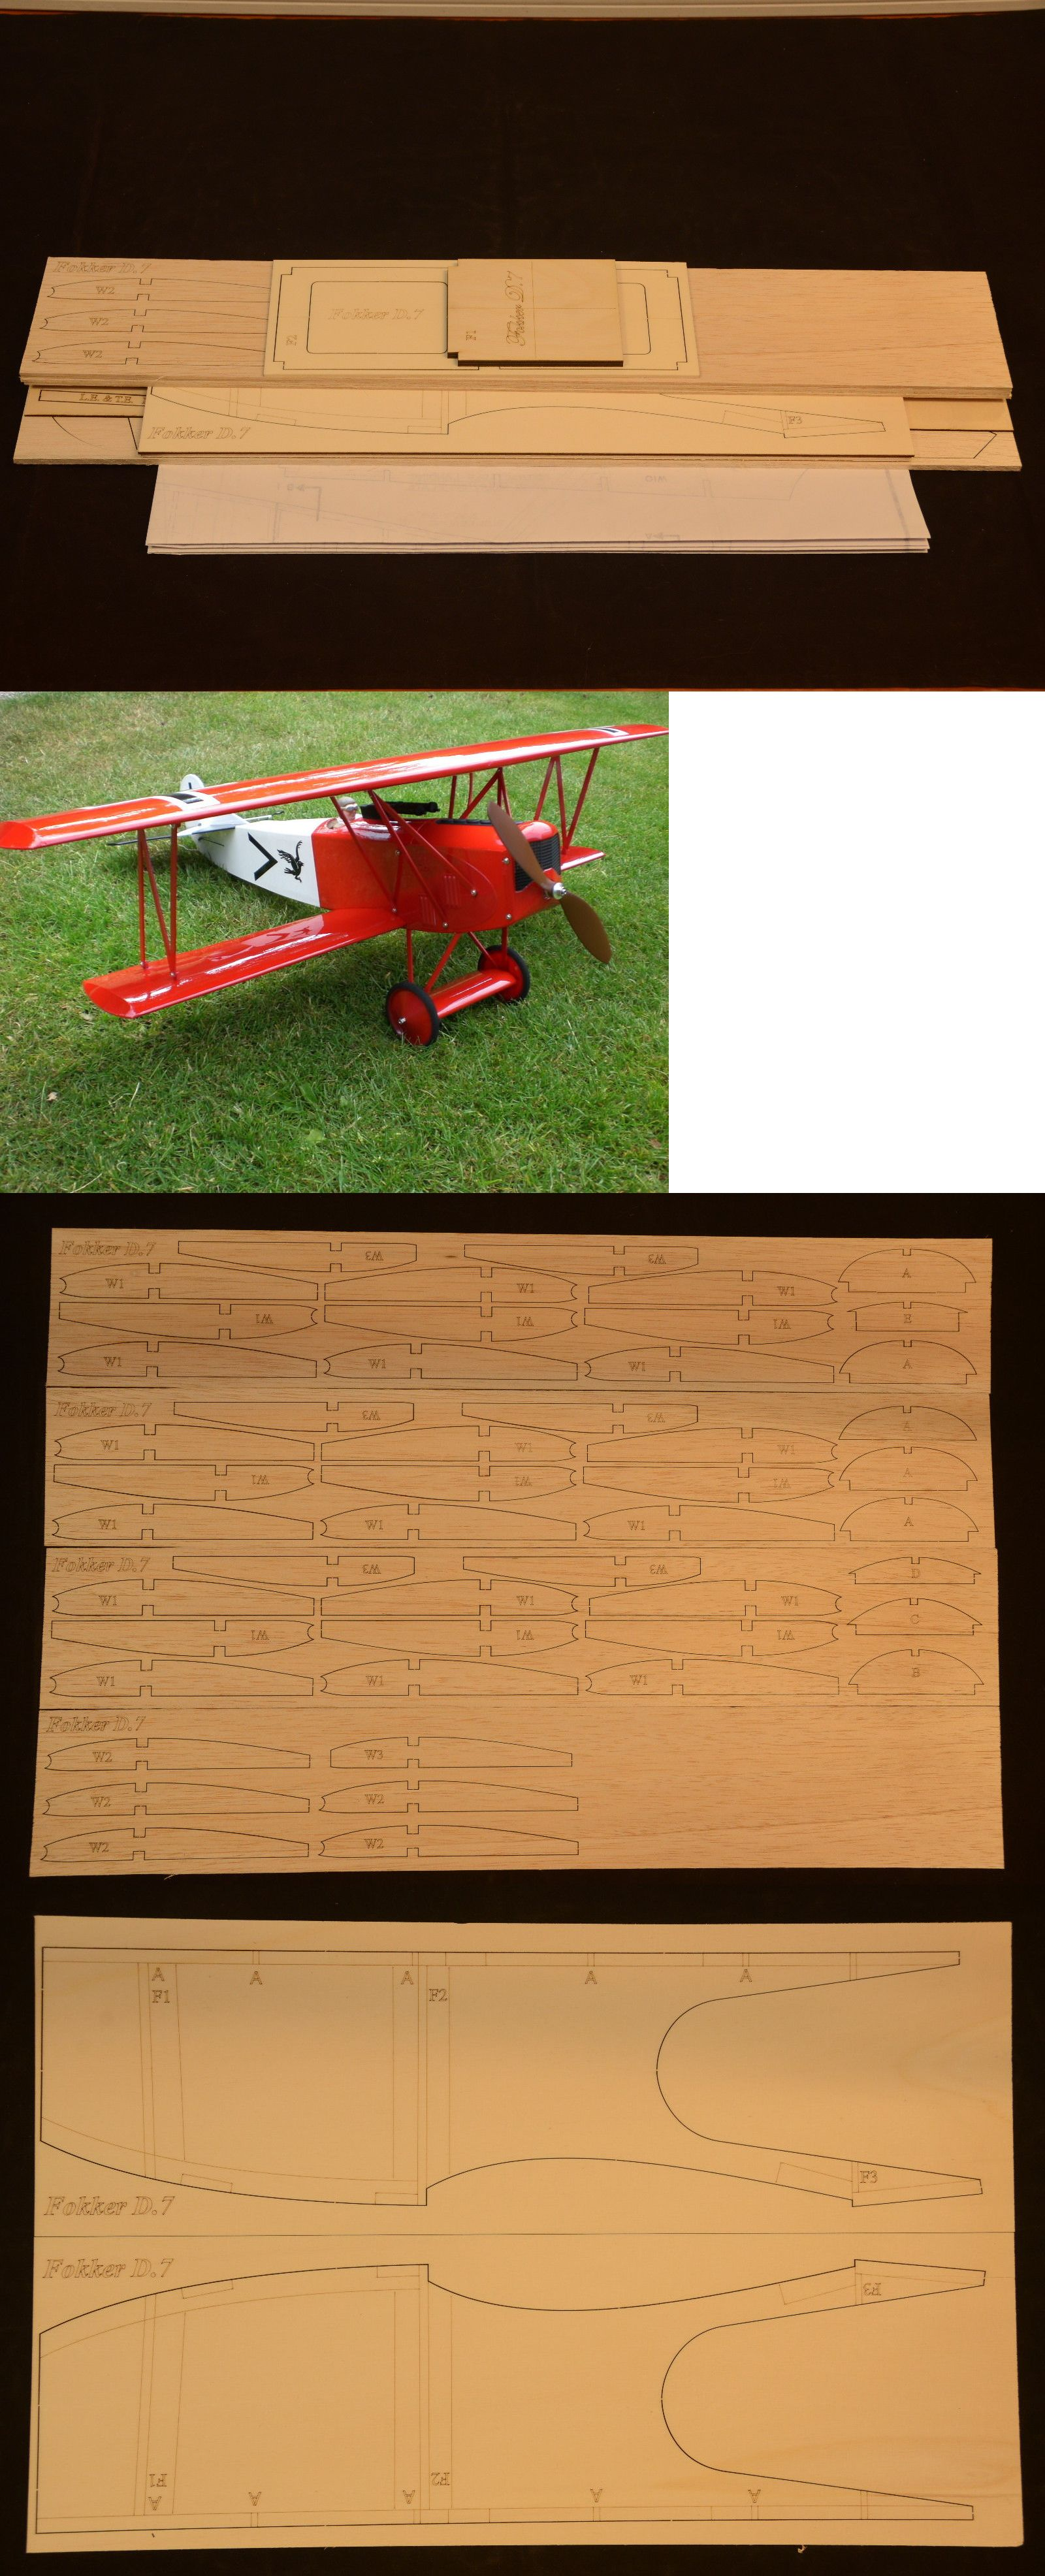 RC Plans Templates and Manuals 182212 1 7 Scale R C Biplane – Templates for Manuals